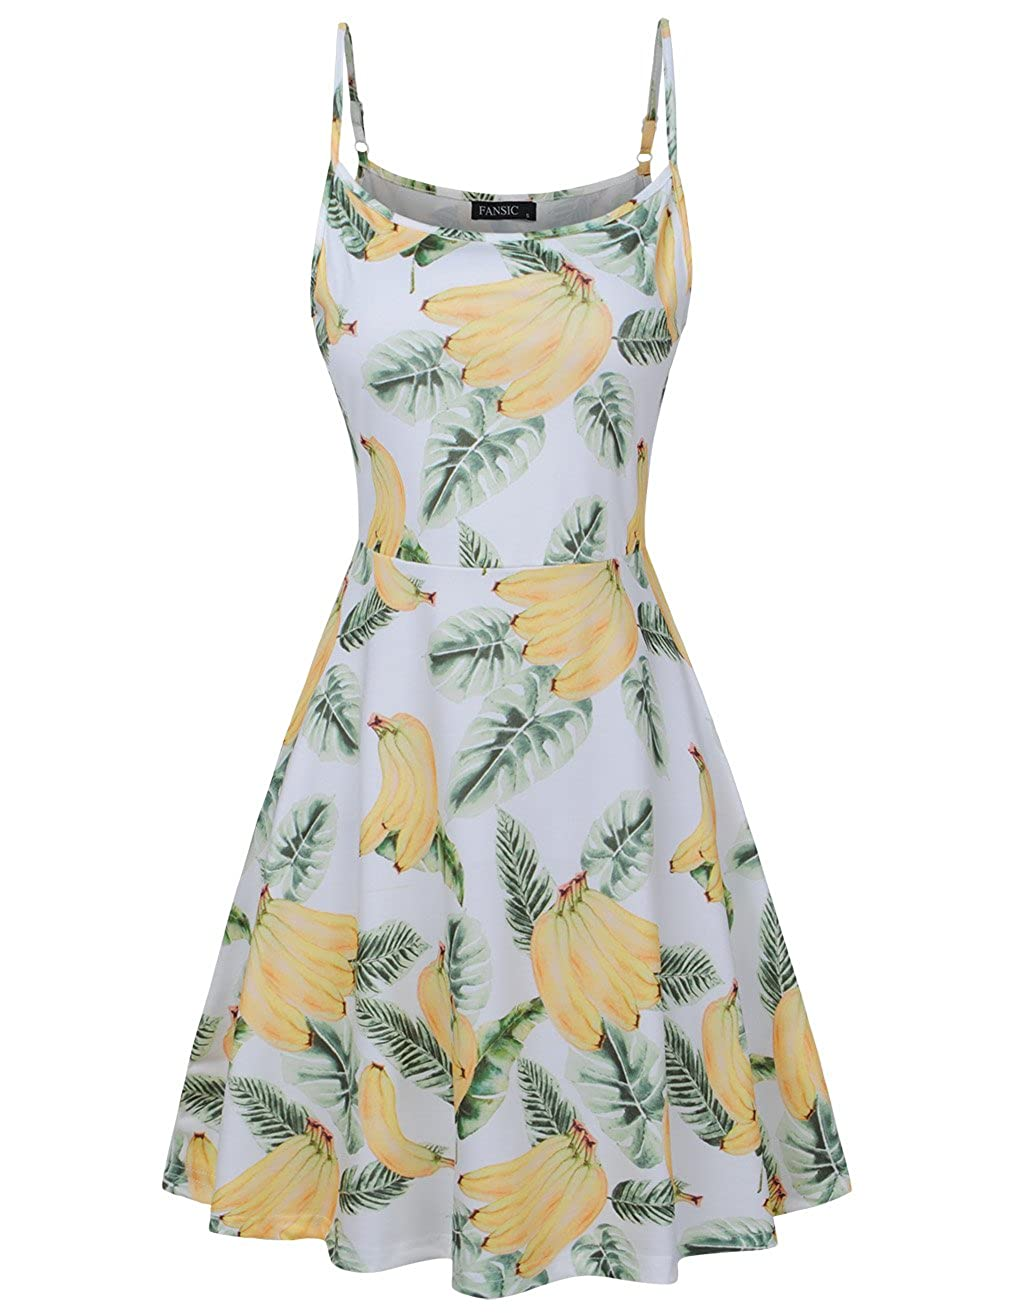 White and Yellow 261 FANSIC Womens Sleeveless Floral Printed Swing Sundress Spaghetti Strap Dresses